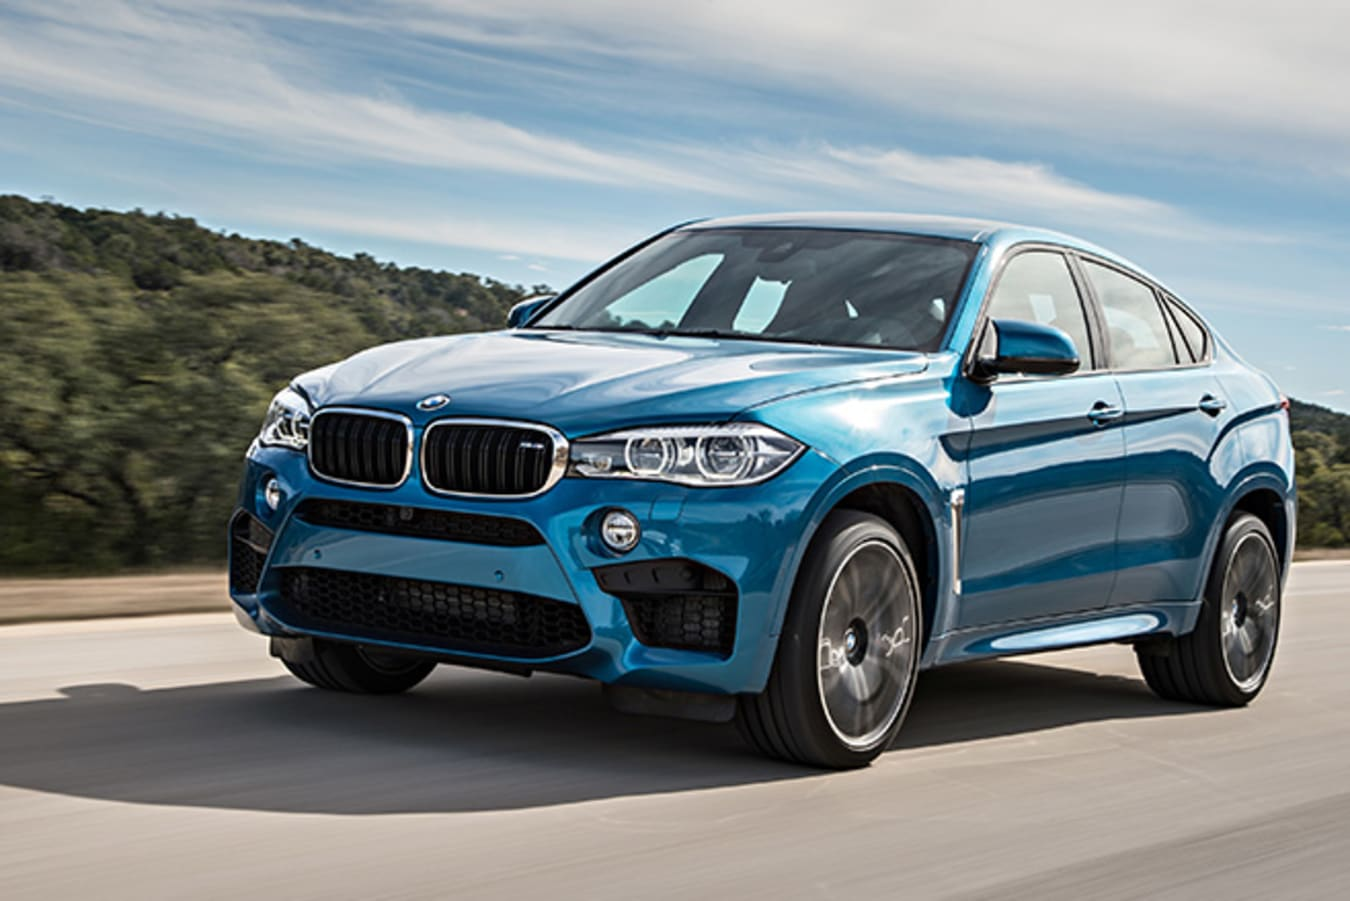 BMW X6 M Front Side